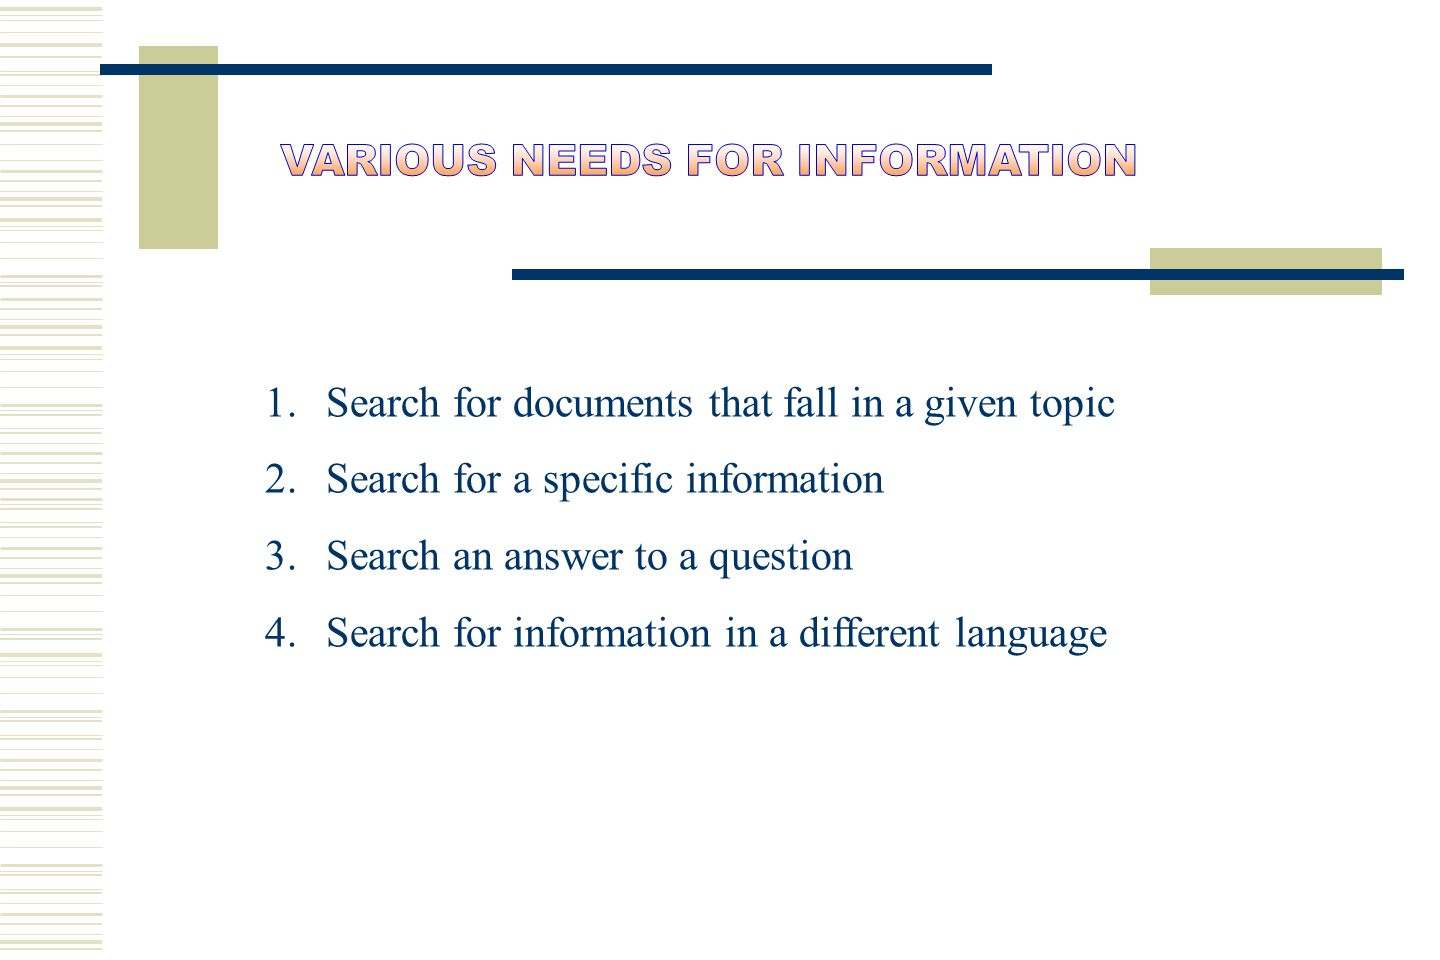 1.Search for documents that fall in a given topic 2.Search for a specific information 3.Search an answer to a question 4.Search for information in a different language